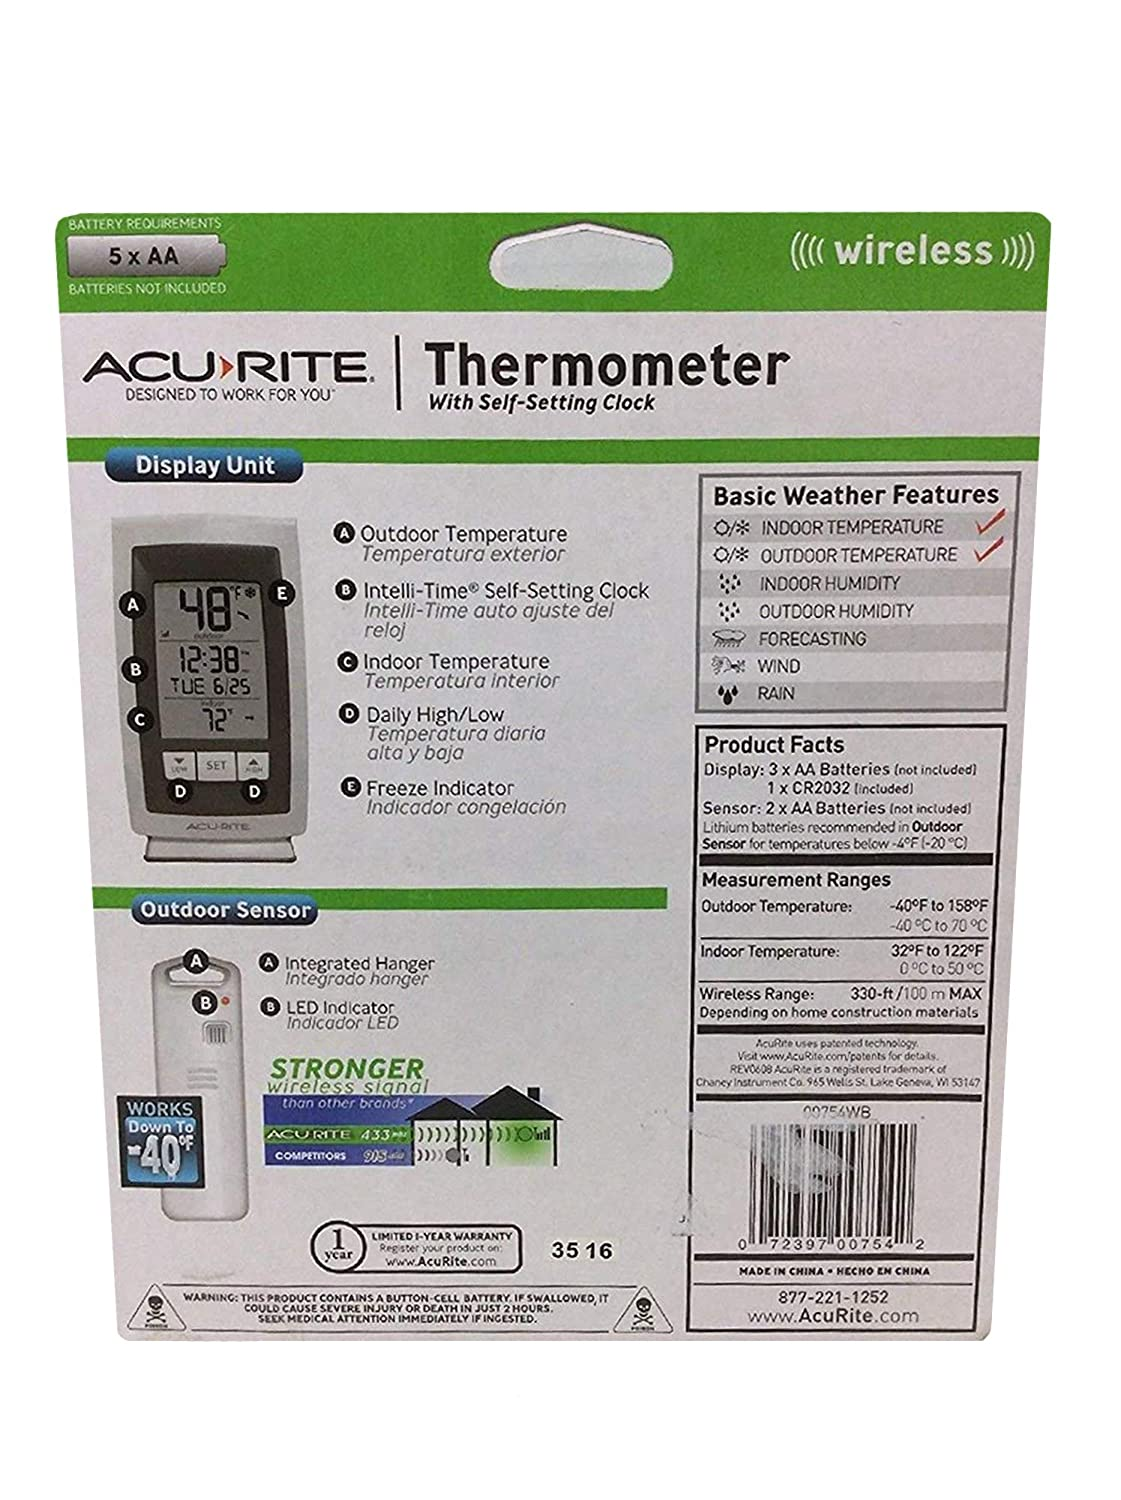 Amazon.com : Acurite Digital Indoor / Outdoor Wireless Thermometer 00754w4 with Self-setting Clock and Daily High/low : Garden & Outdoor